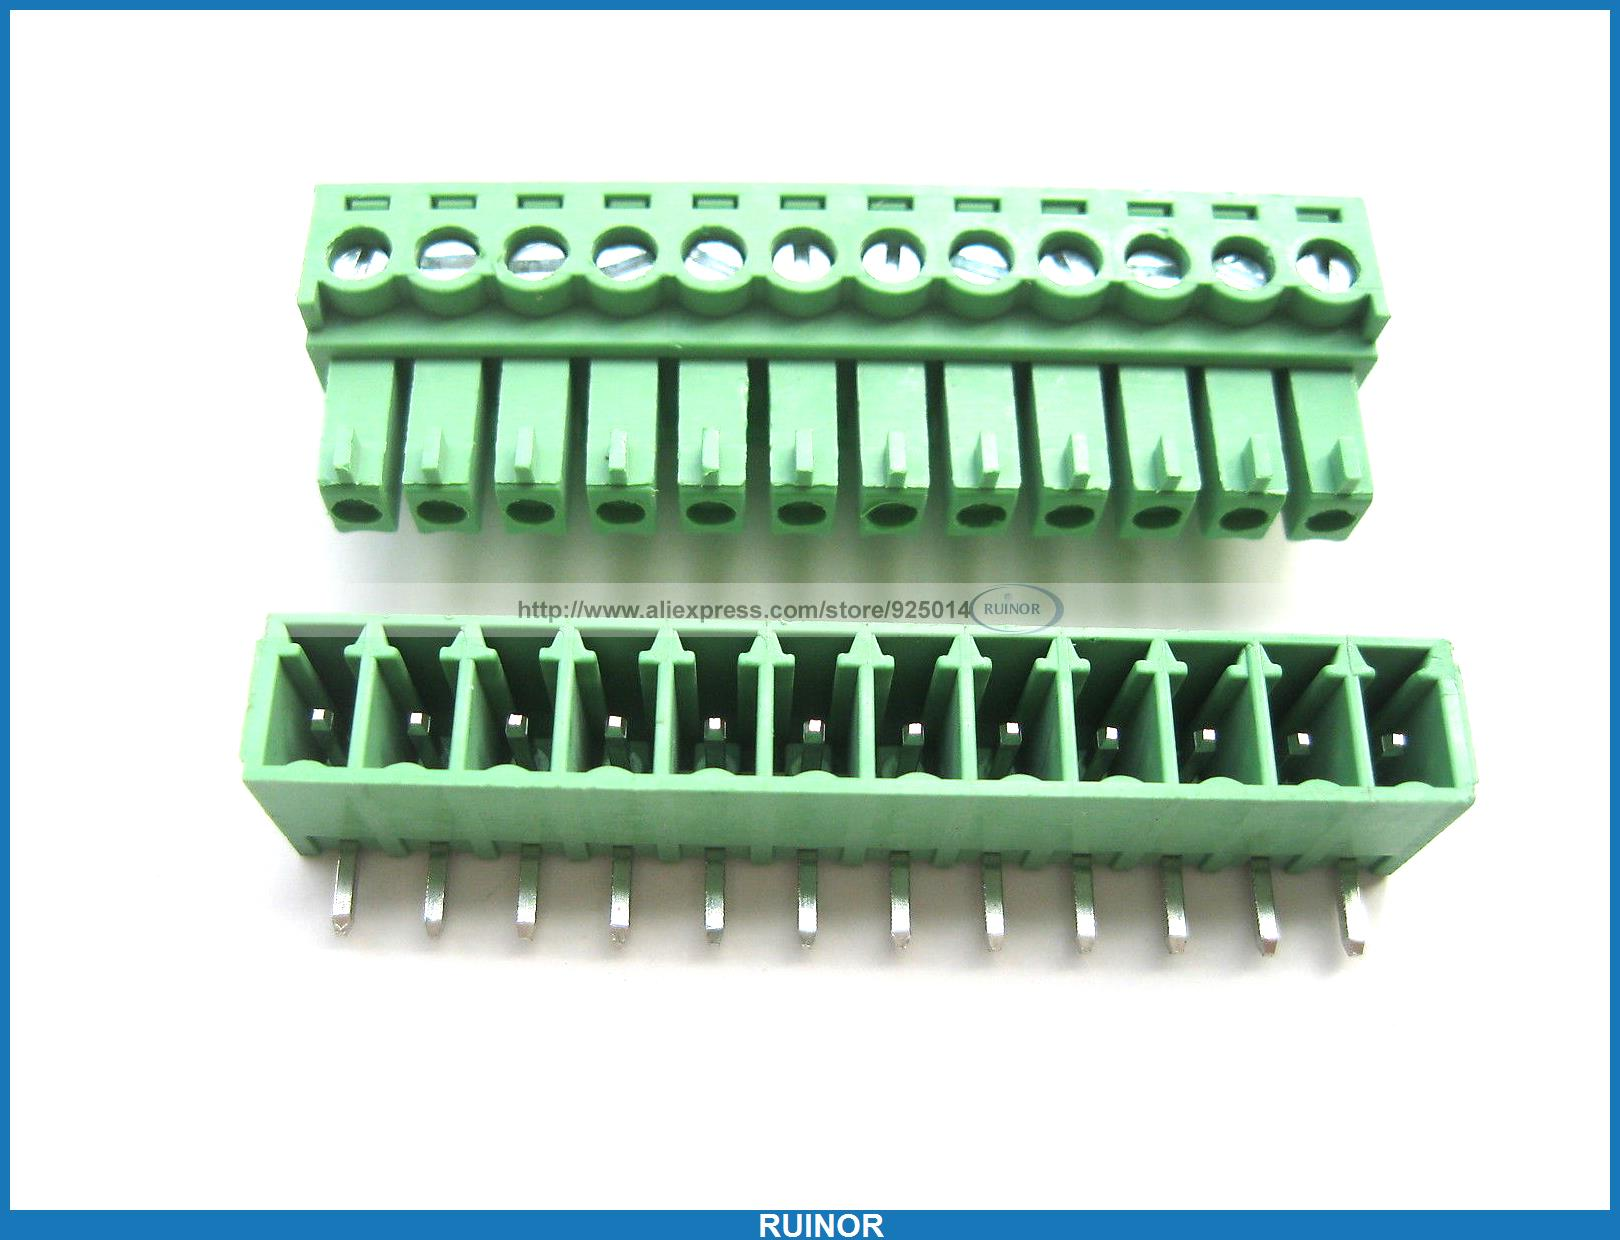 ФОТО 30 Pcs Screw Terminal Block Connector 3.5mm Angle 12 Pin Green Pluggable Type